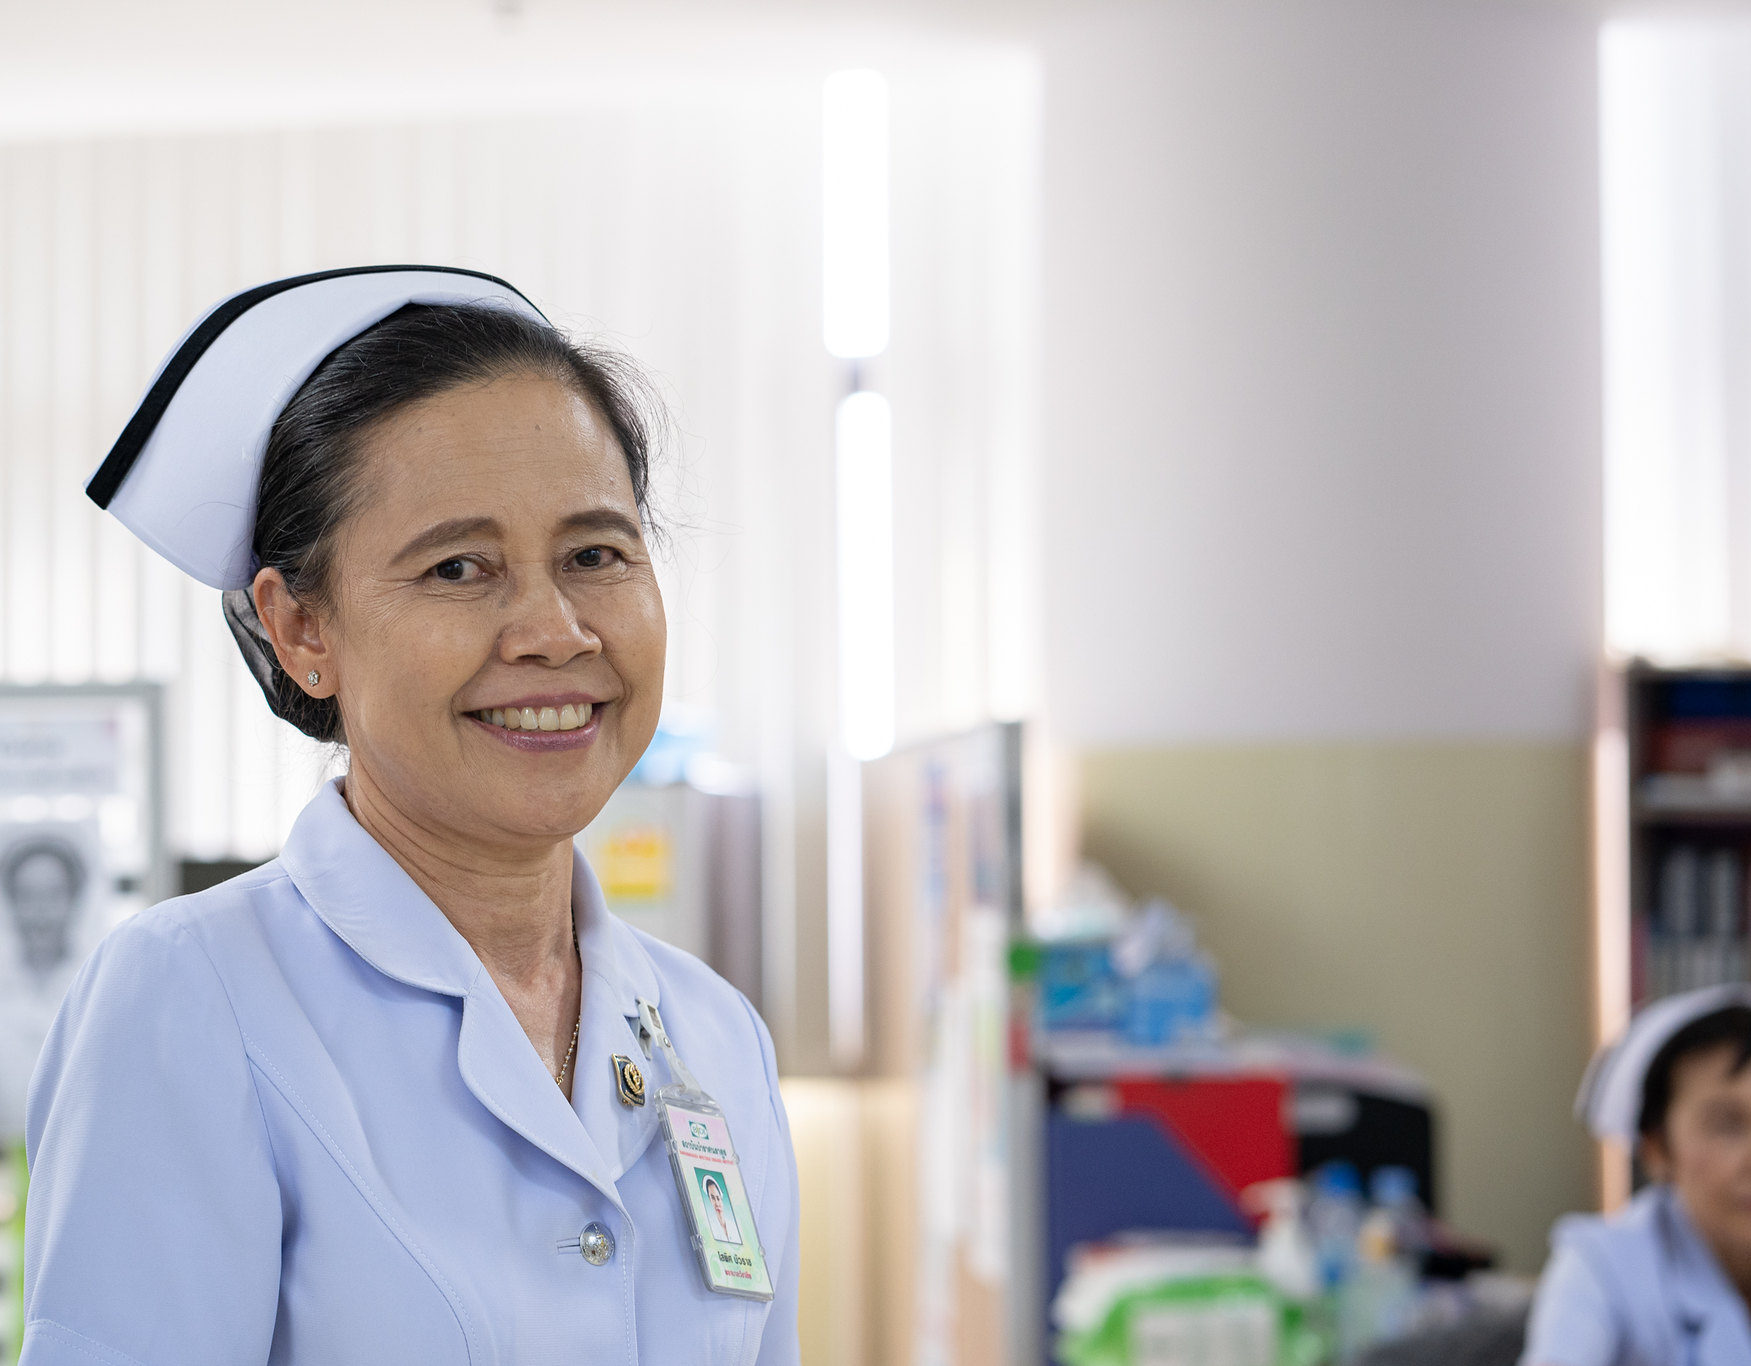 Solidarity and psychosocial support: Healthcare workers on World Mental Health Day